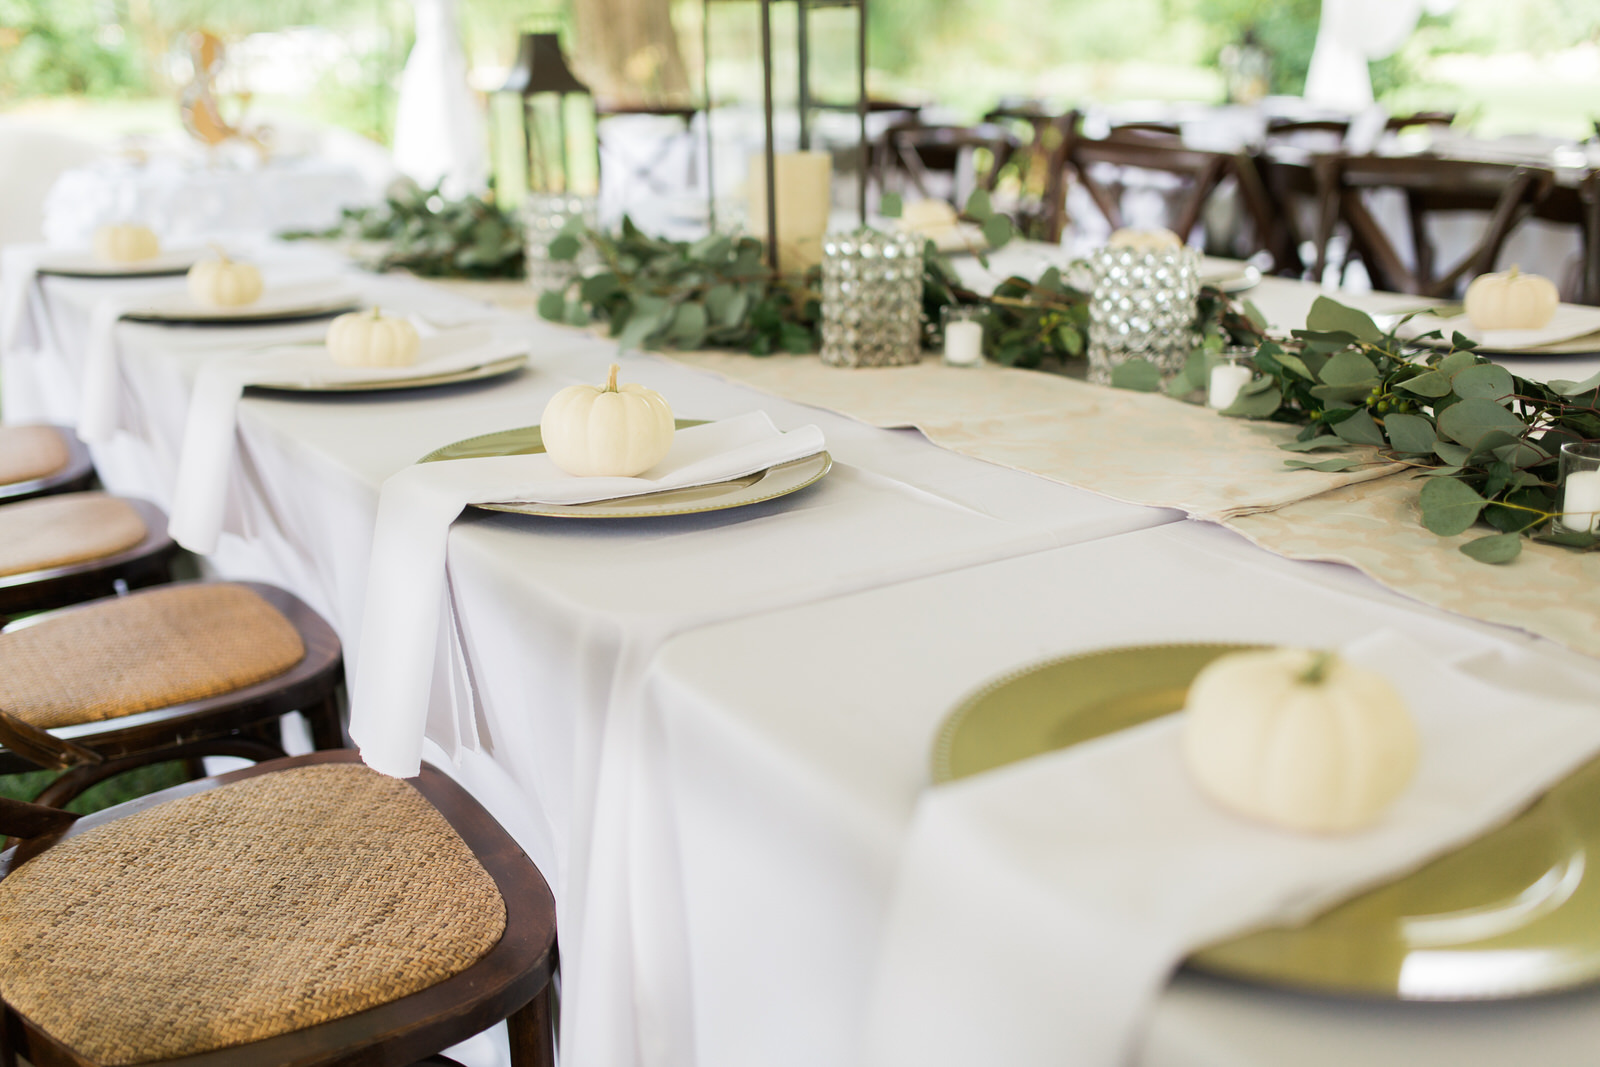 Garland and lanterns lining table for tented wedding reception, gold chargers with white napkins, white pumpkins at each place setting